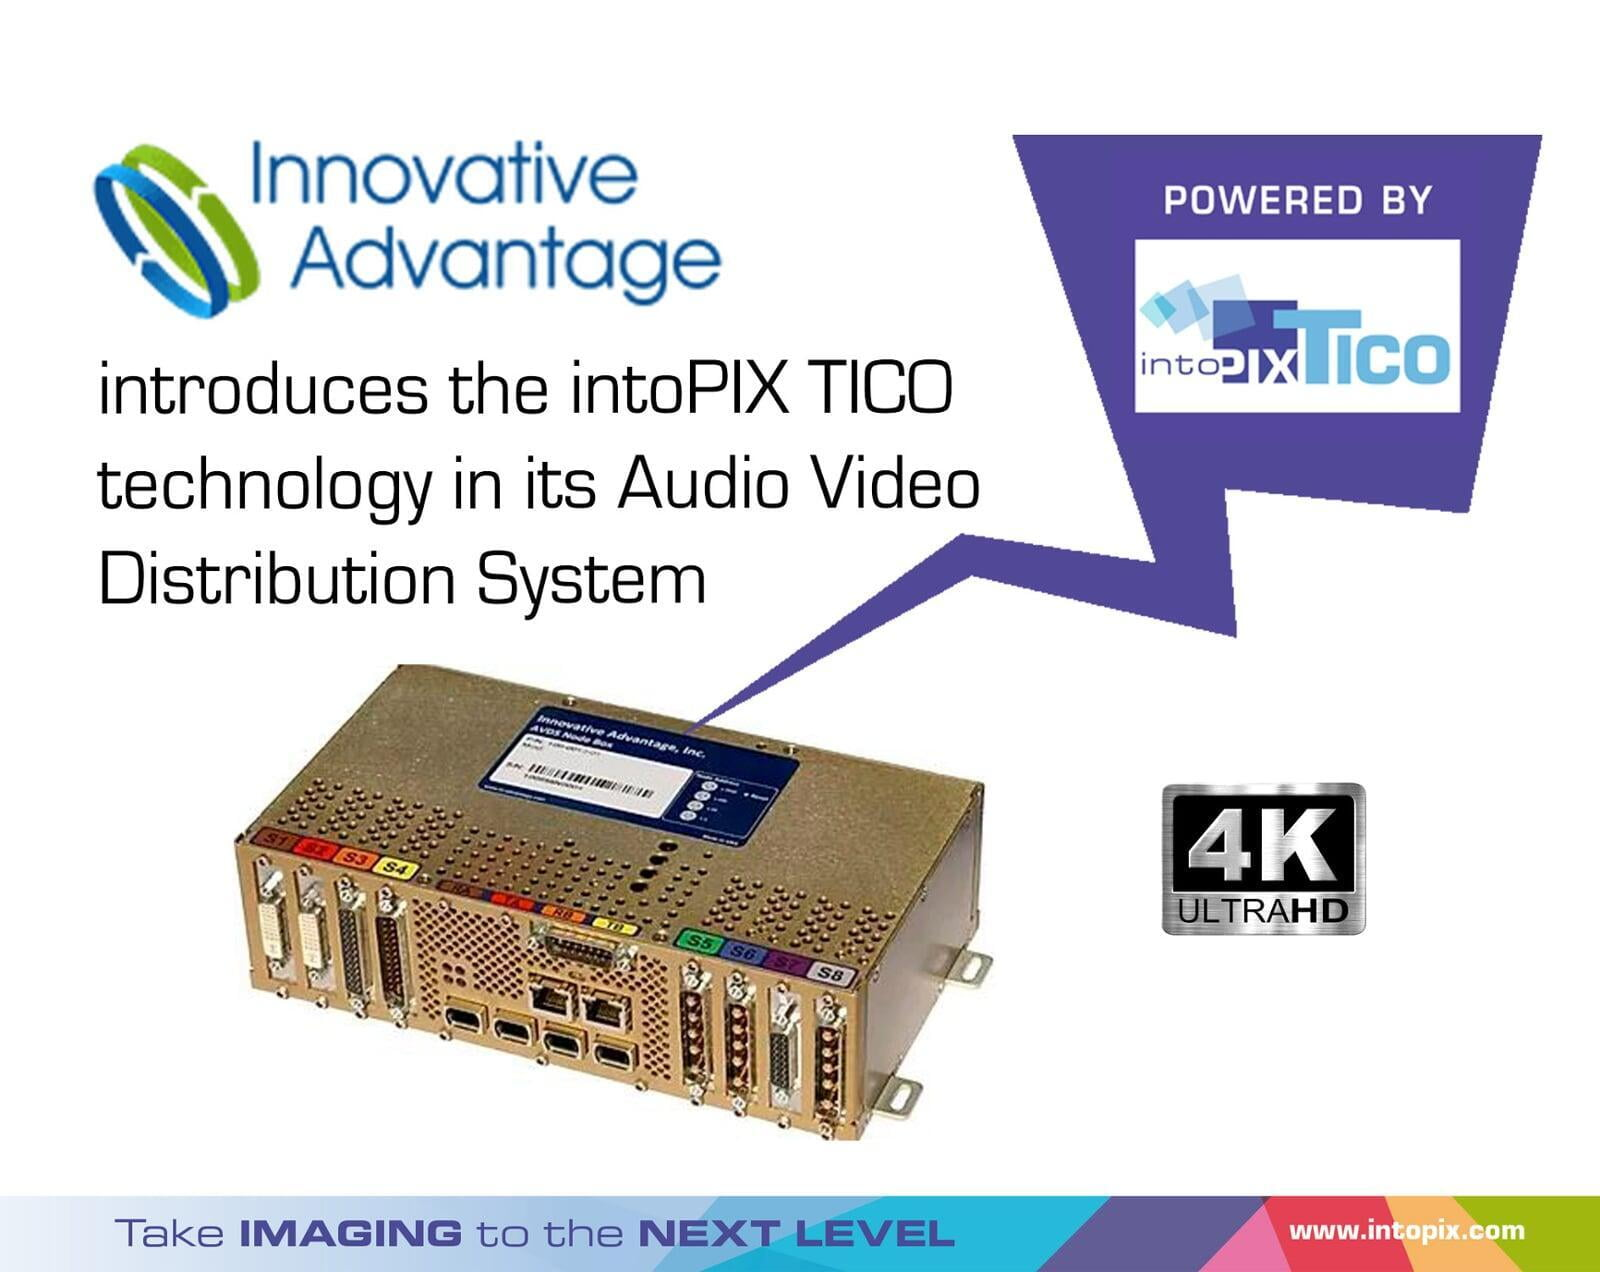 Innovative Advantage upgrades streams from HD to 4K in business jets with the intoPIX TICO RDD35 Technology